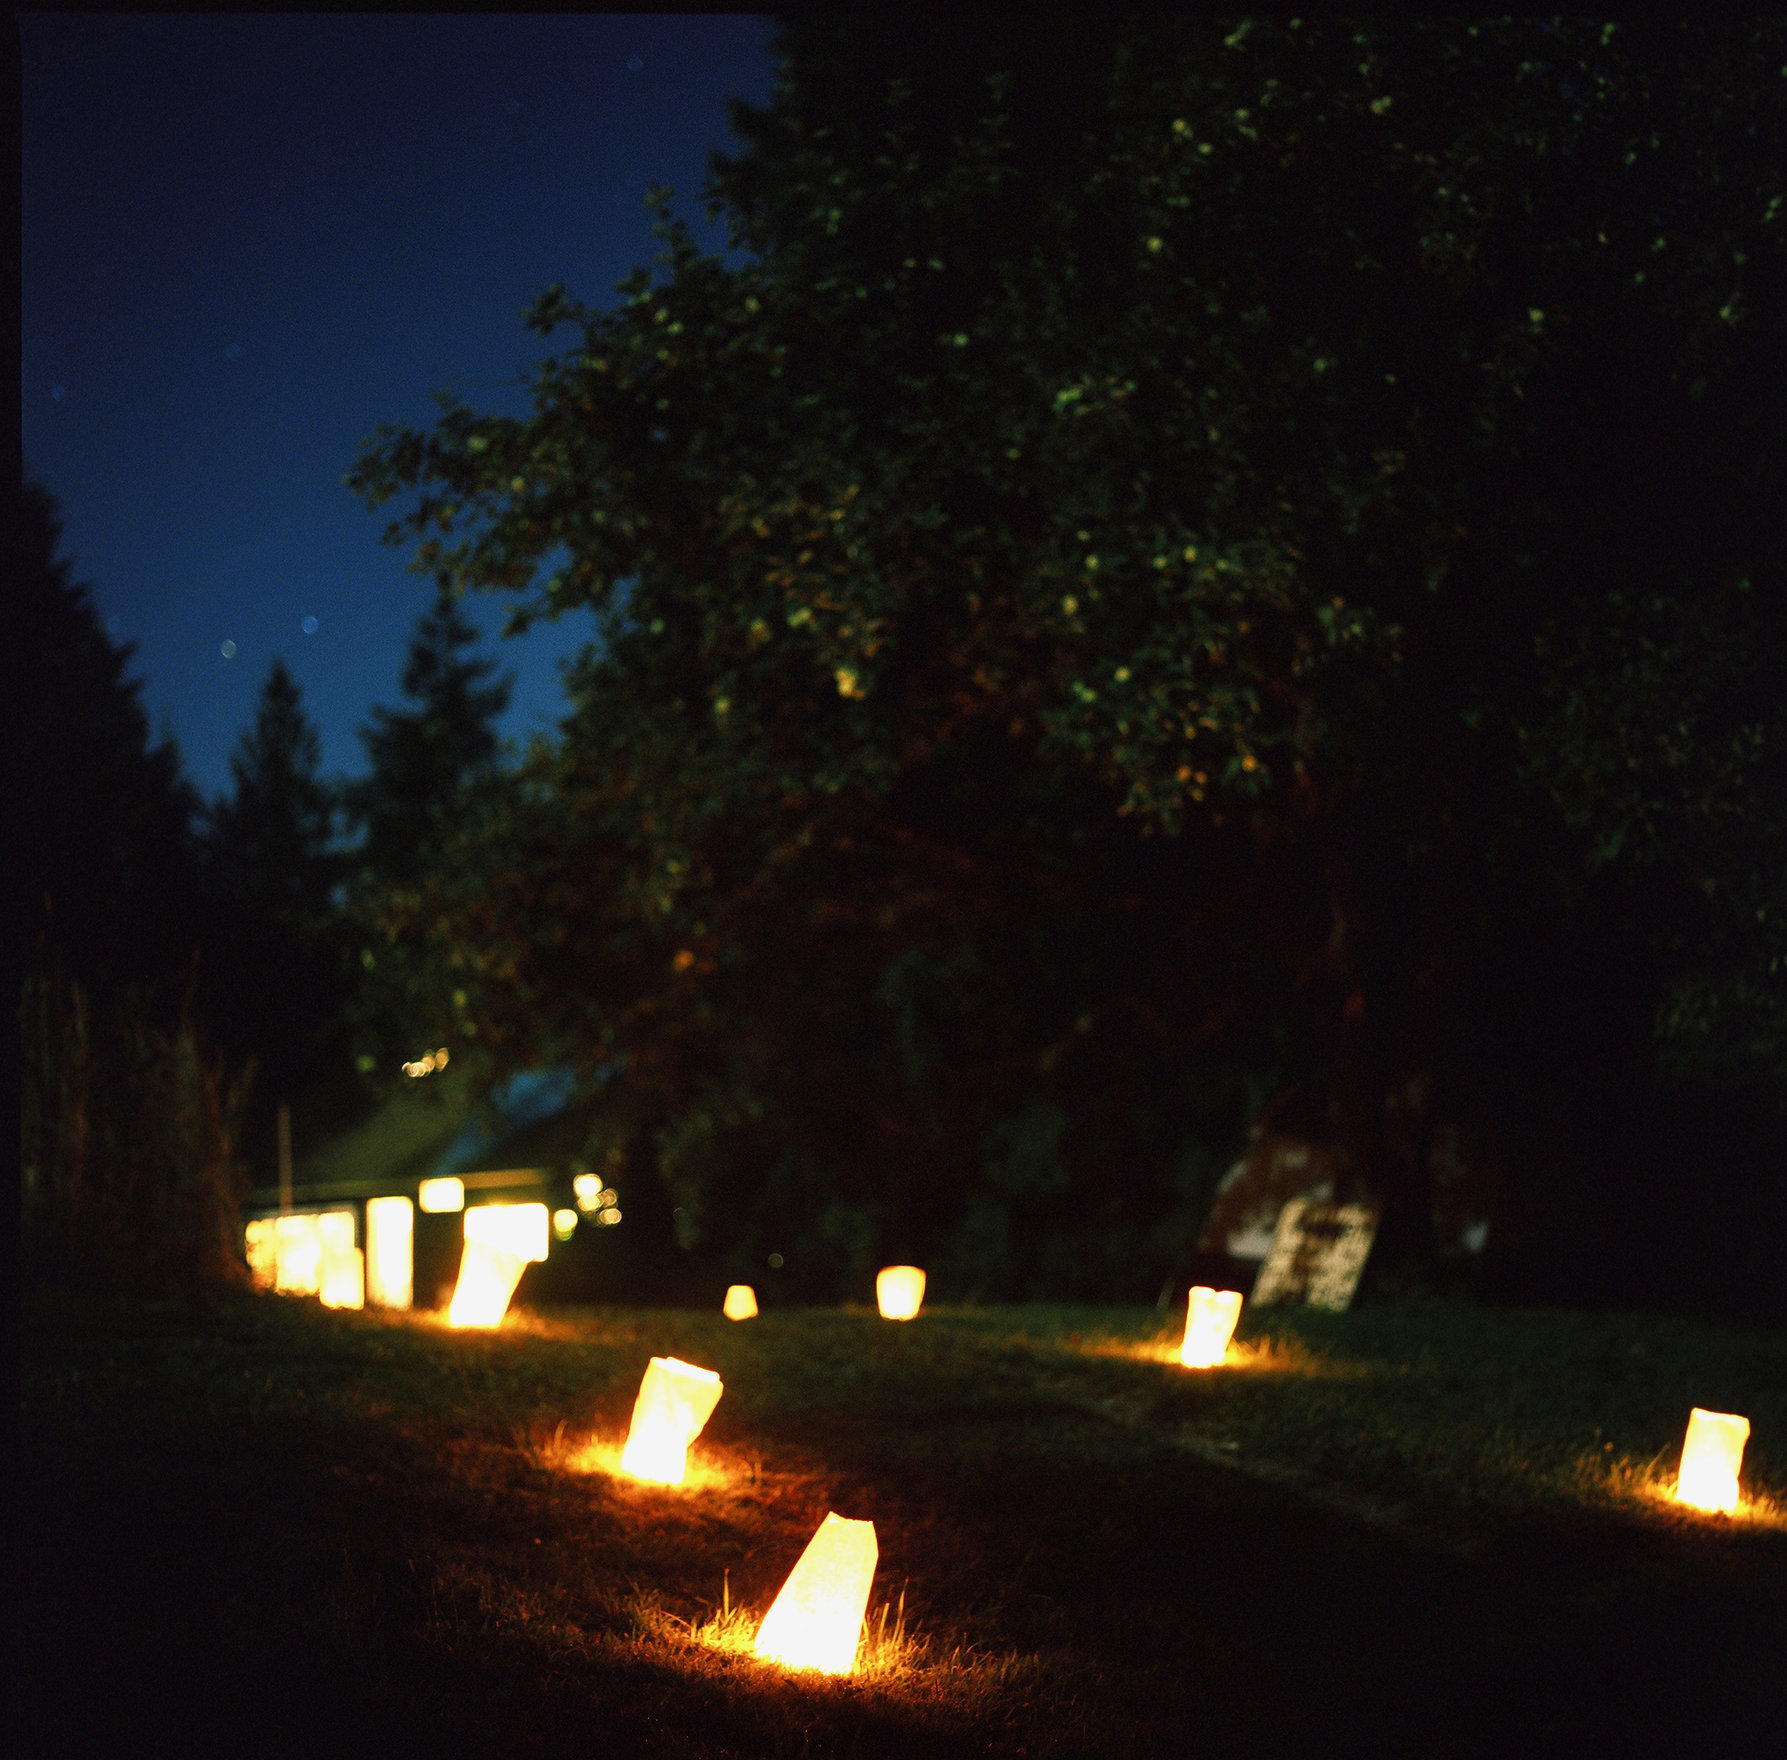 rivernightlanterns.jpg